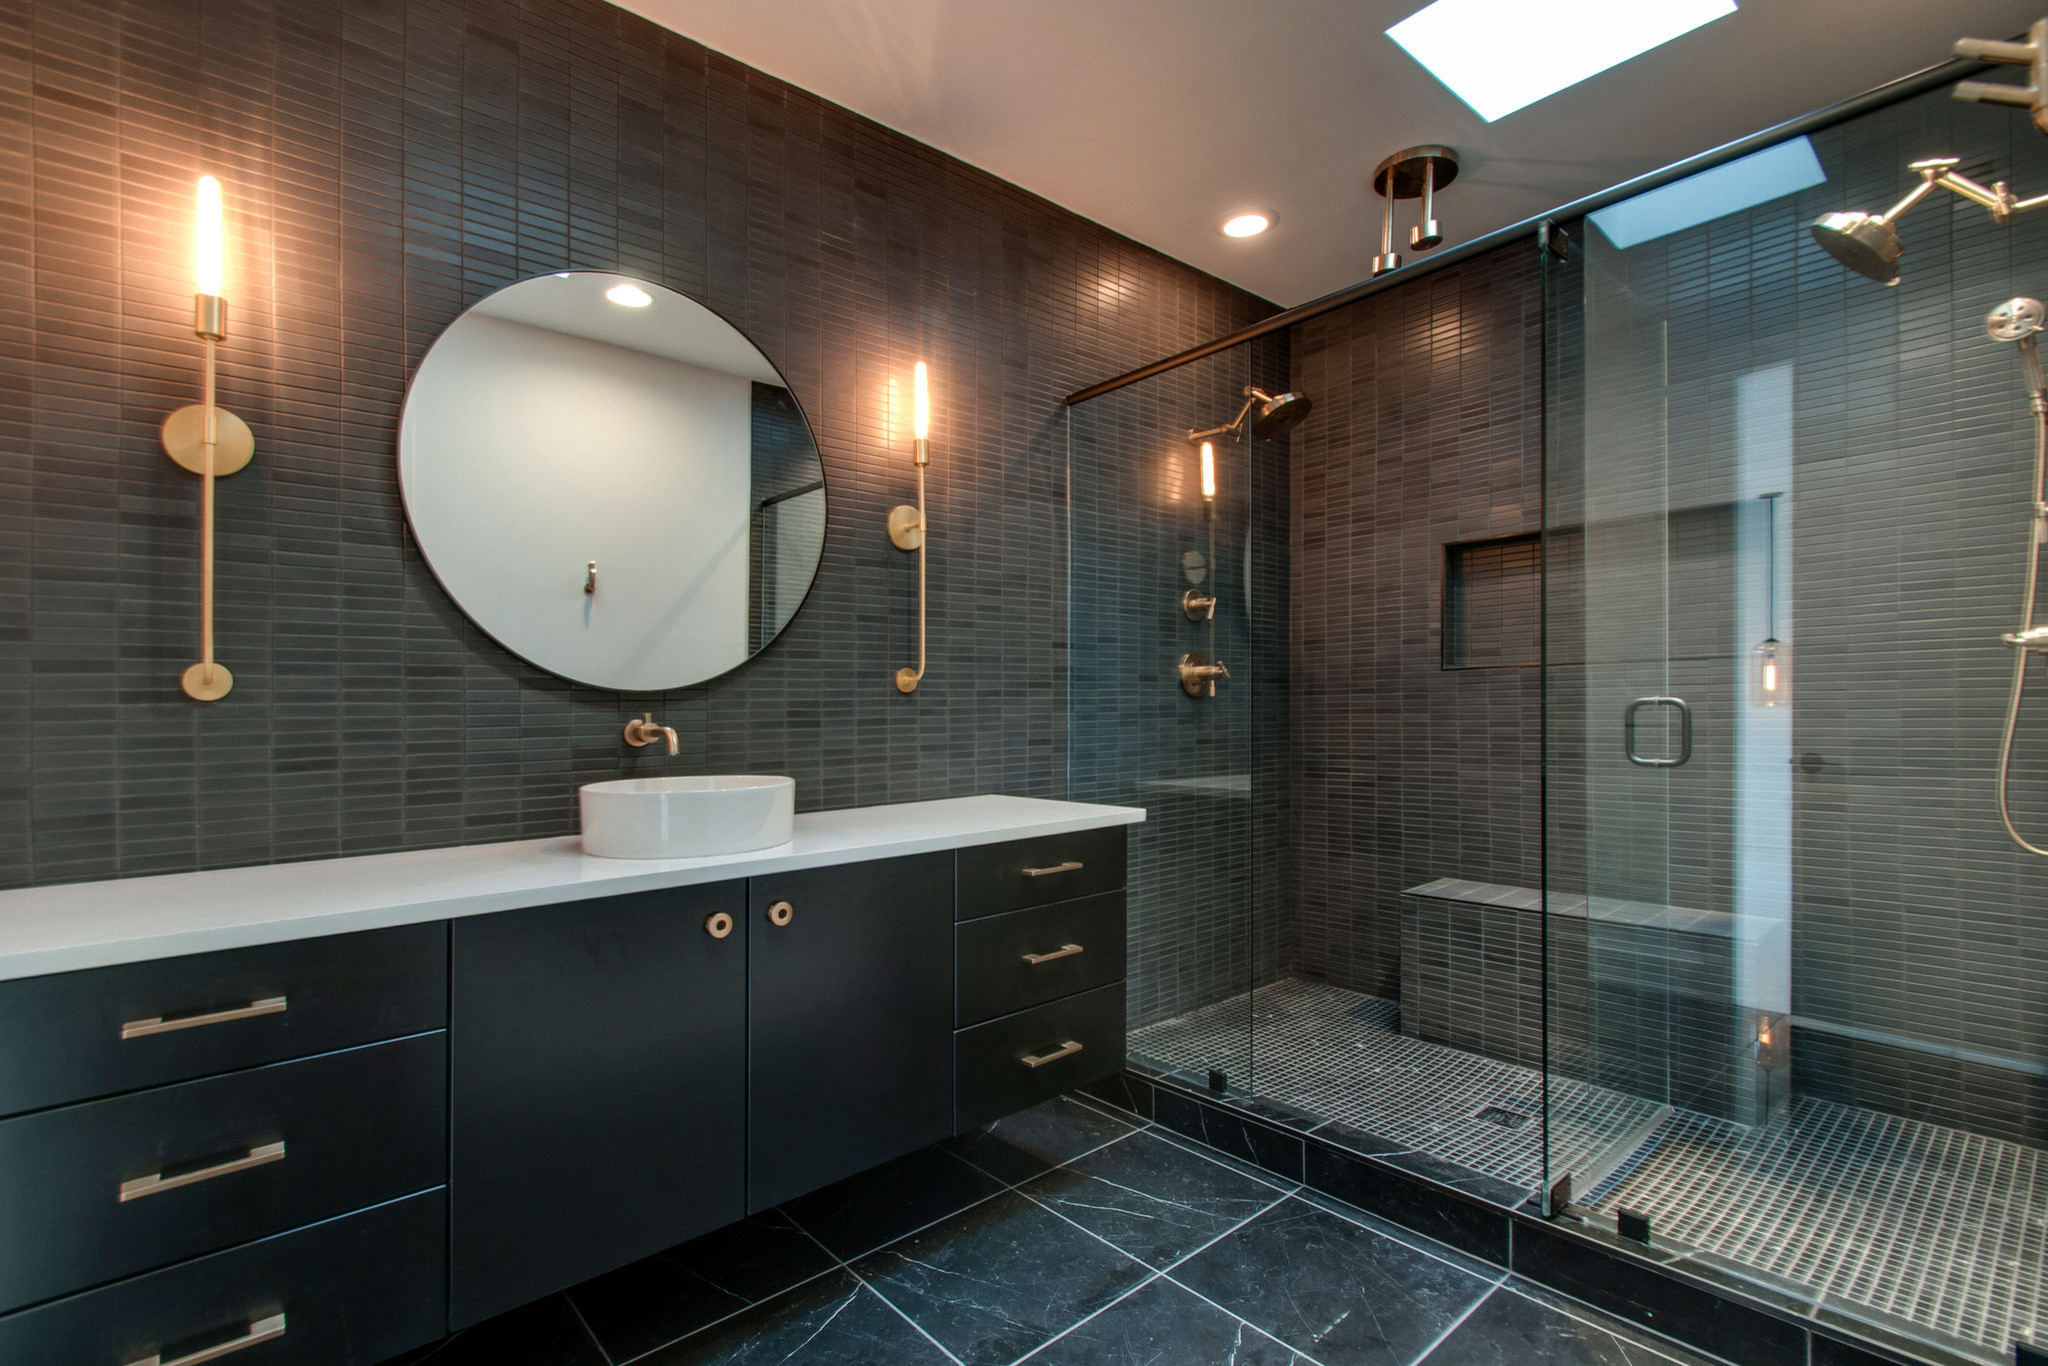 How to brighten up your Bathroom with Mosaic Tiles?